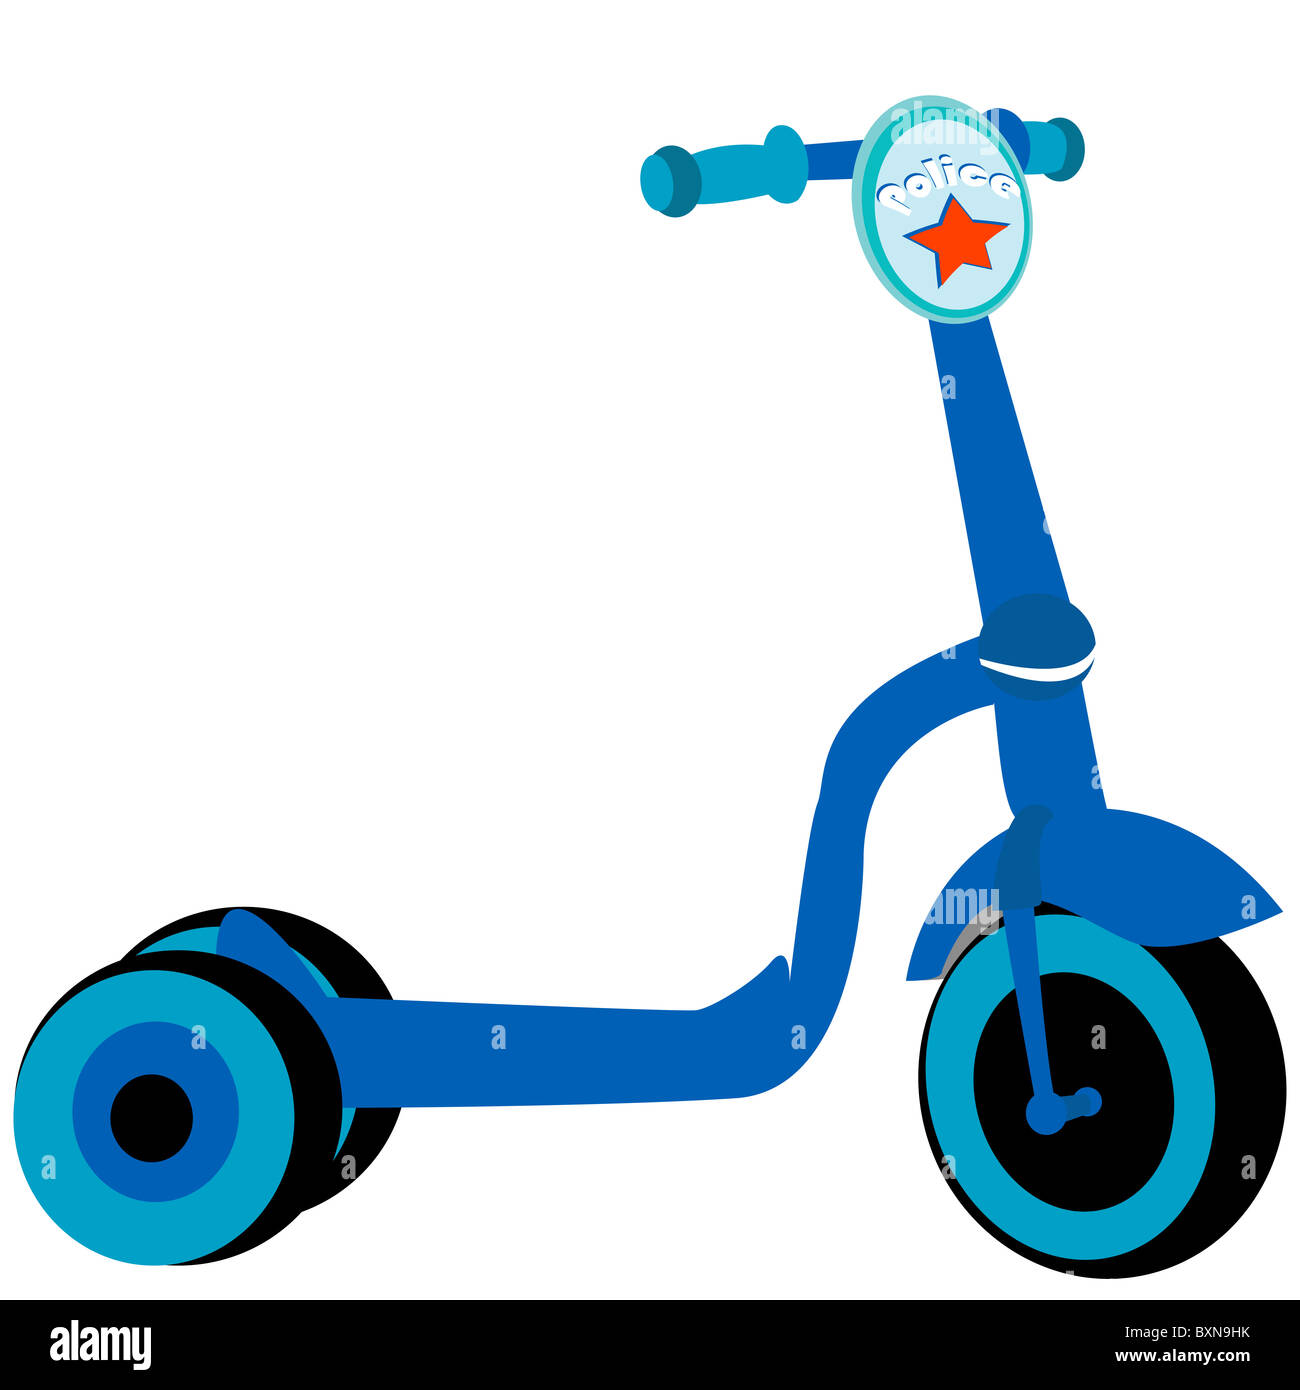 Police toy scooter - Stock Image